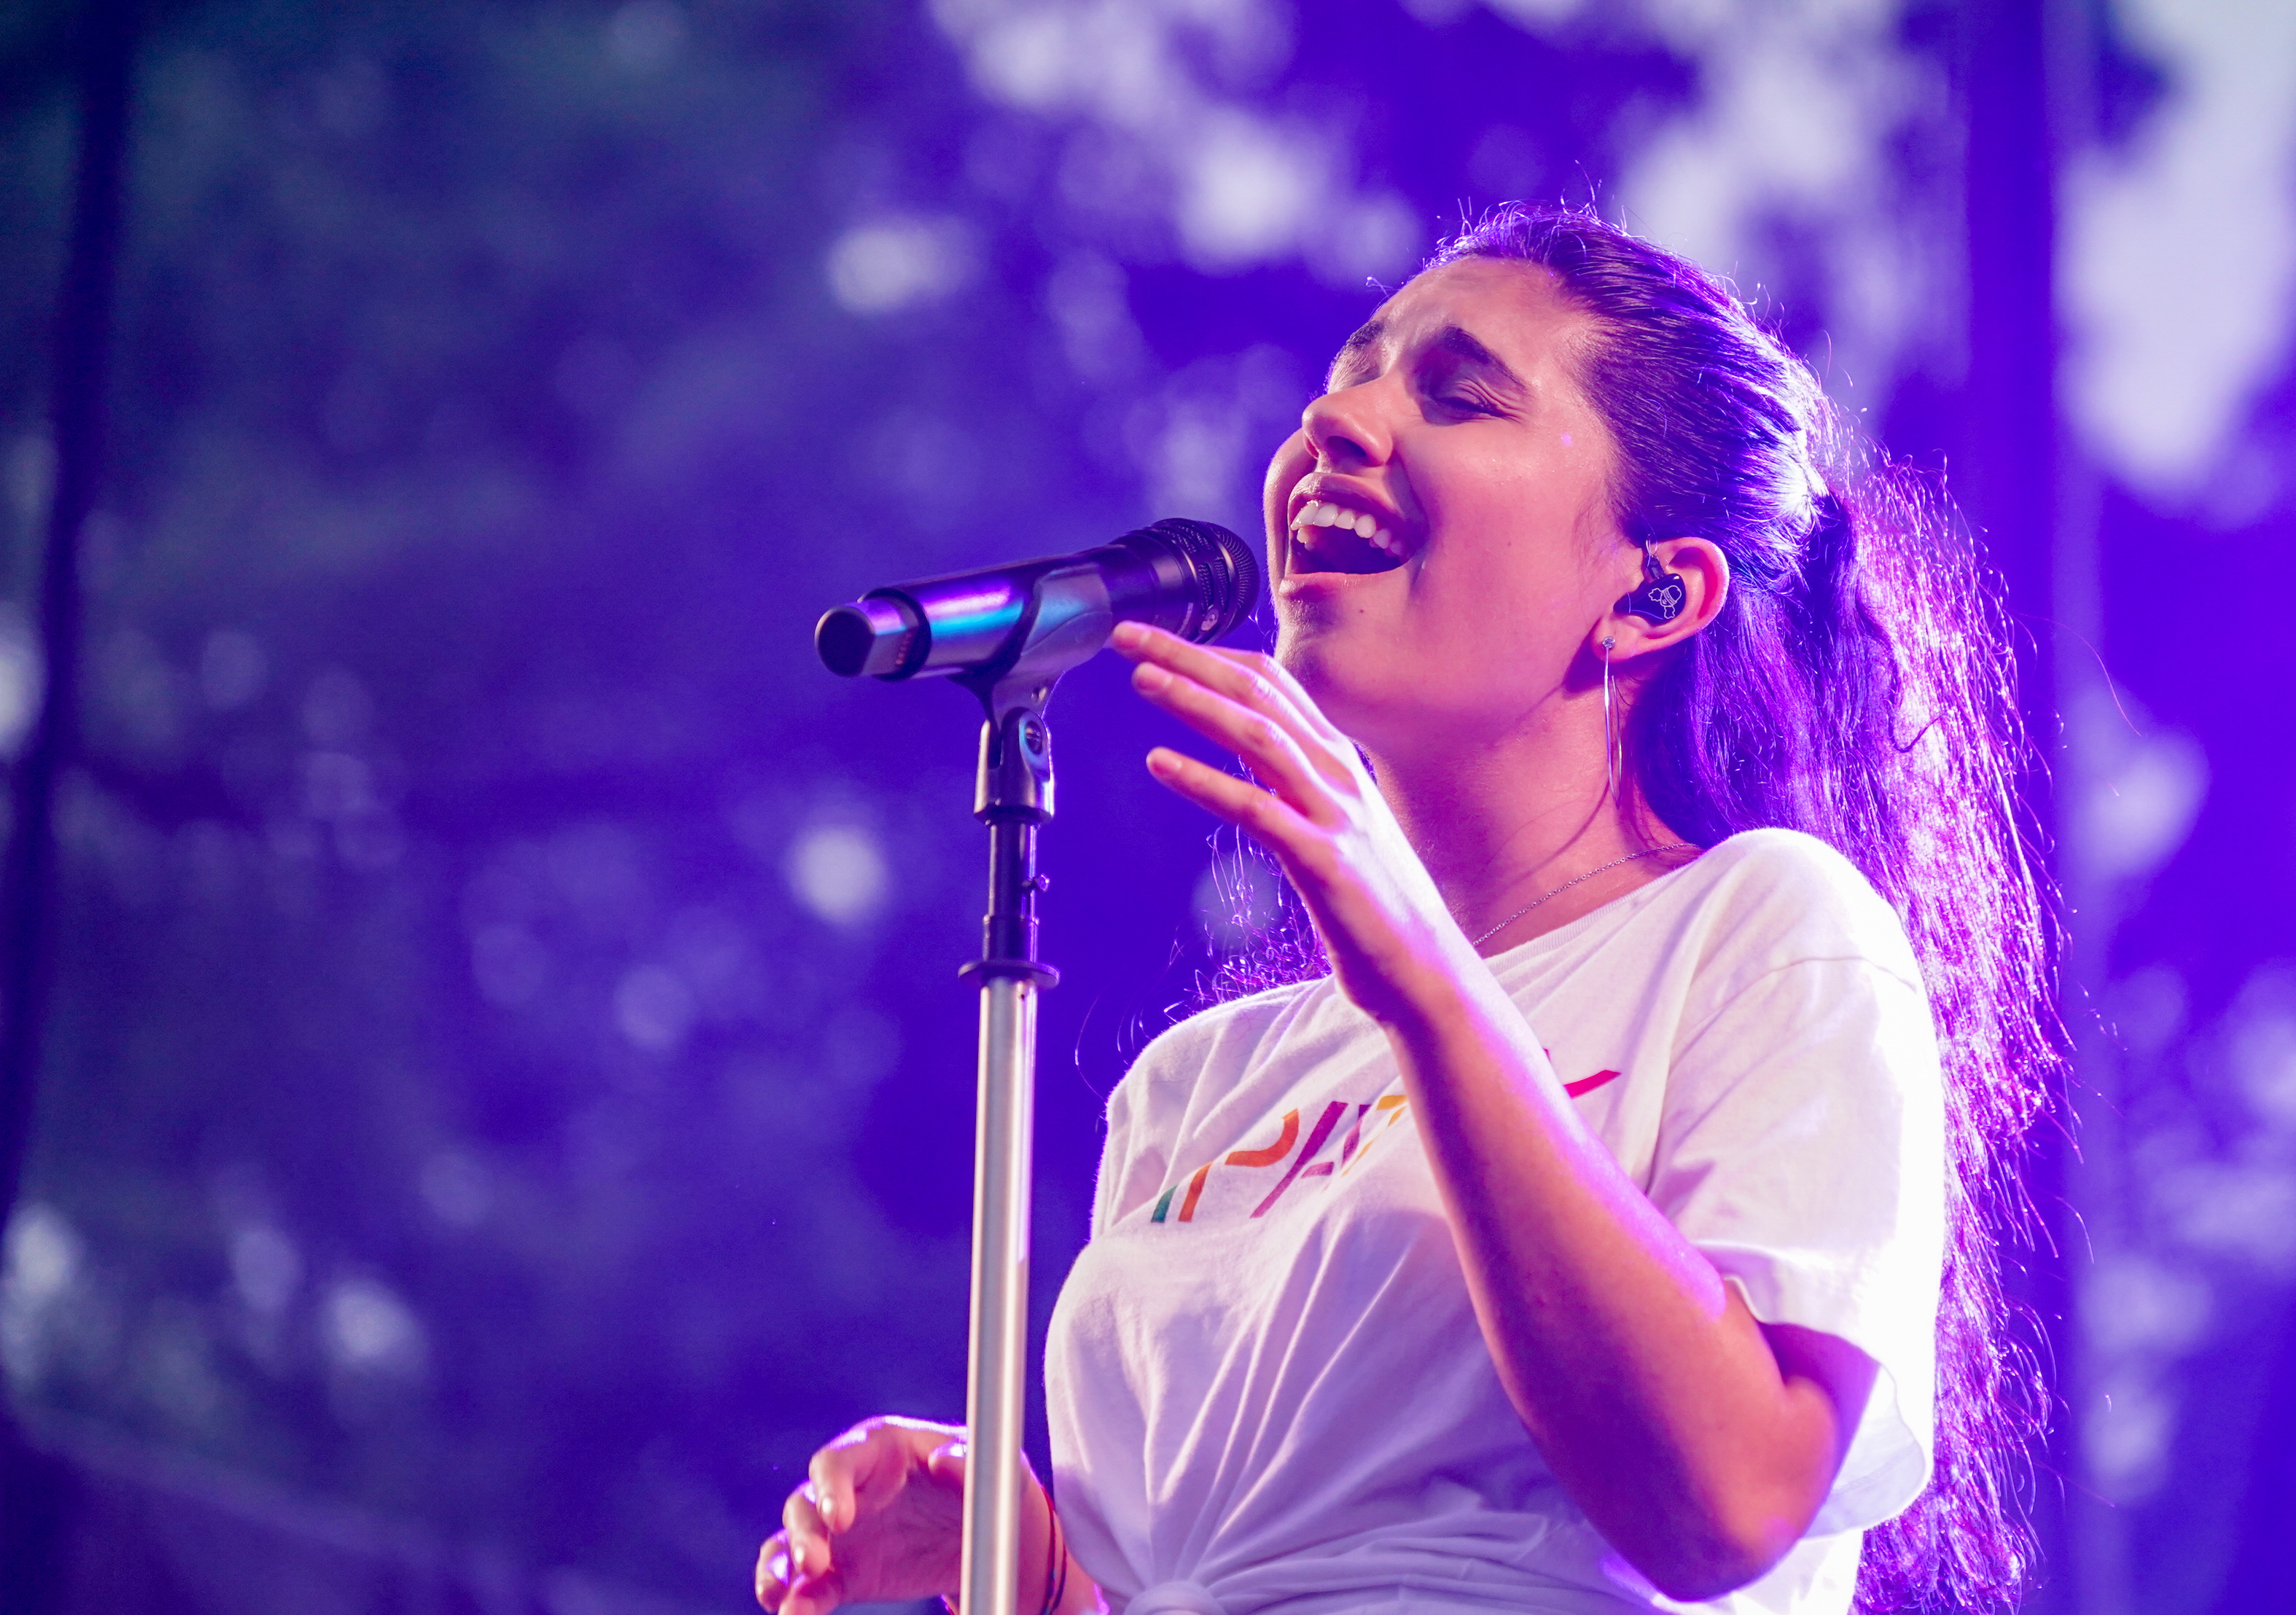 The 22-year old daughter of father (?) and mother(?) Alessia Cara in 2019 photo. Alessia Cara earned a  million dollar salary - leaving the net worth at 1 million in 2019